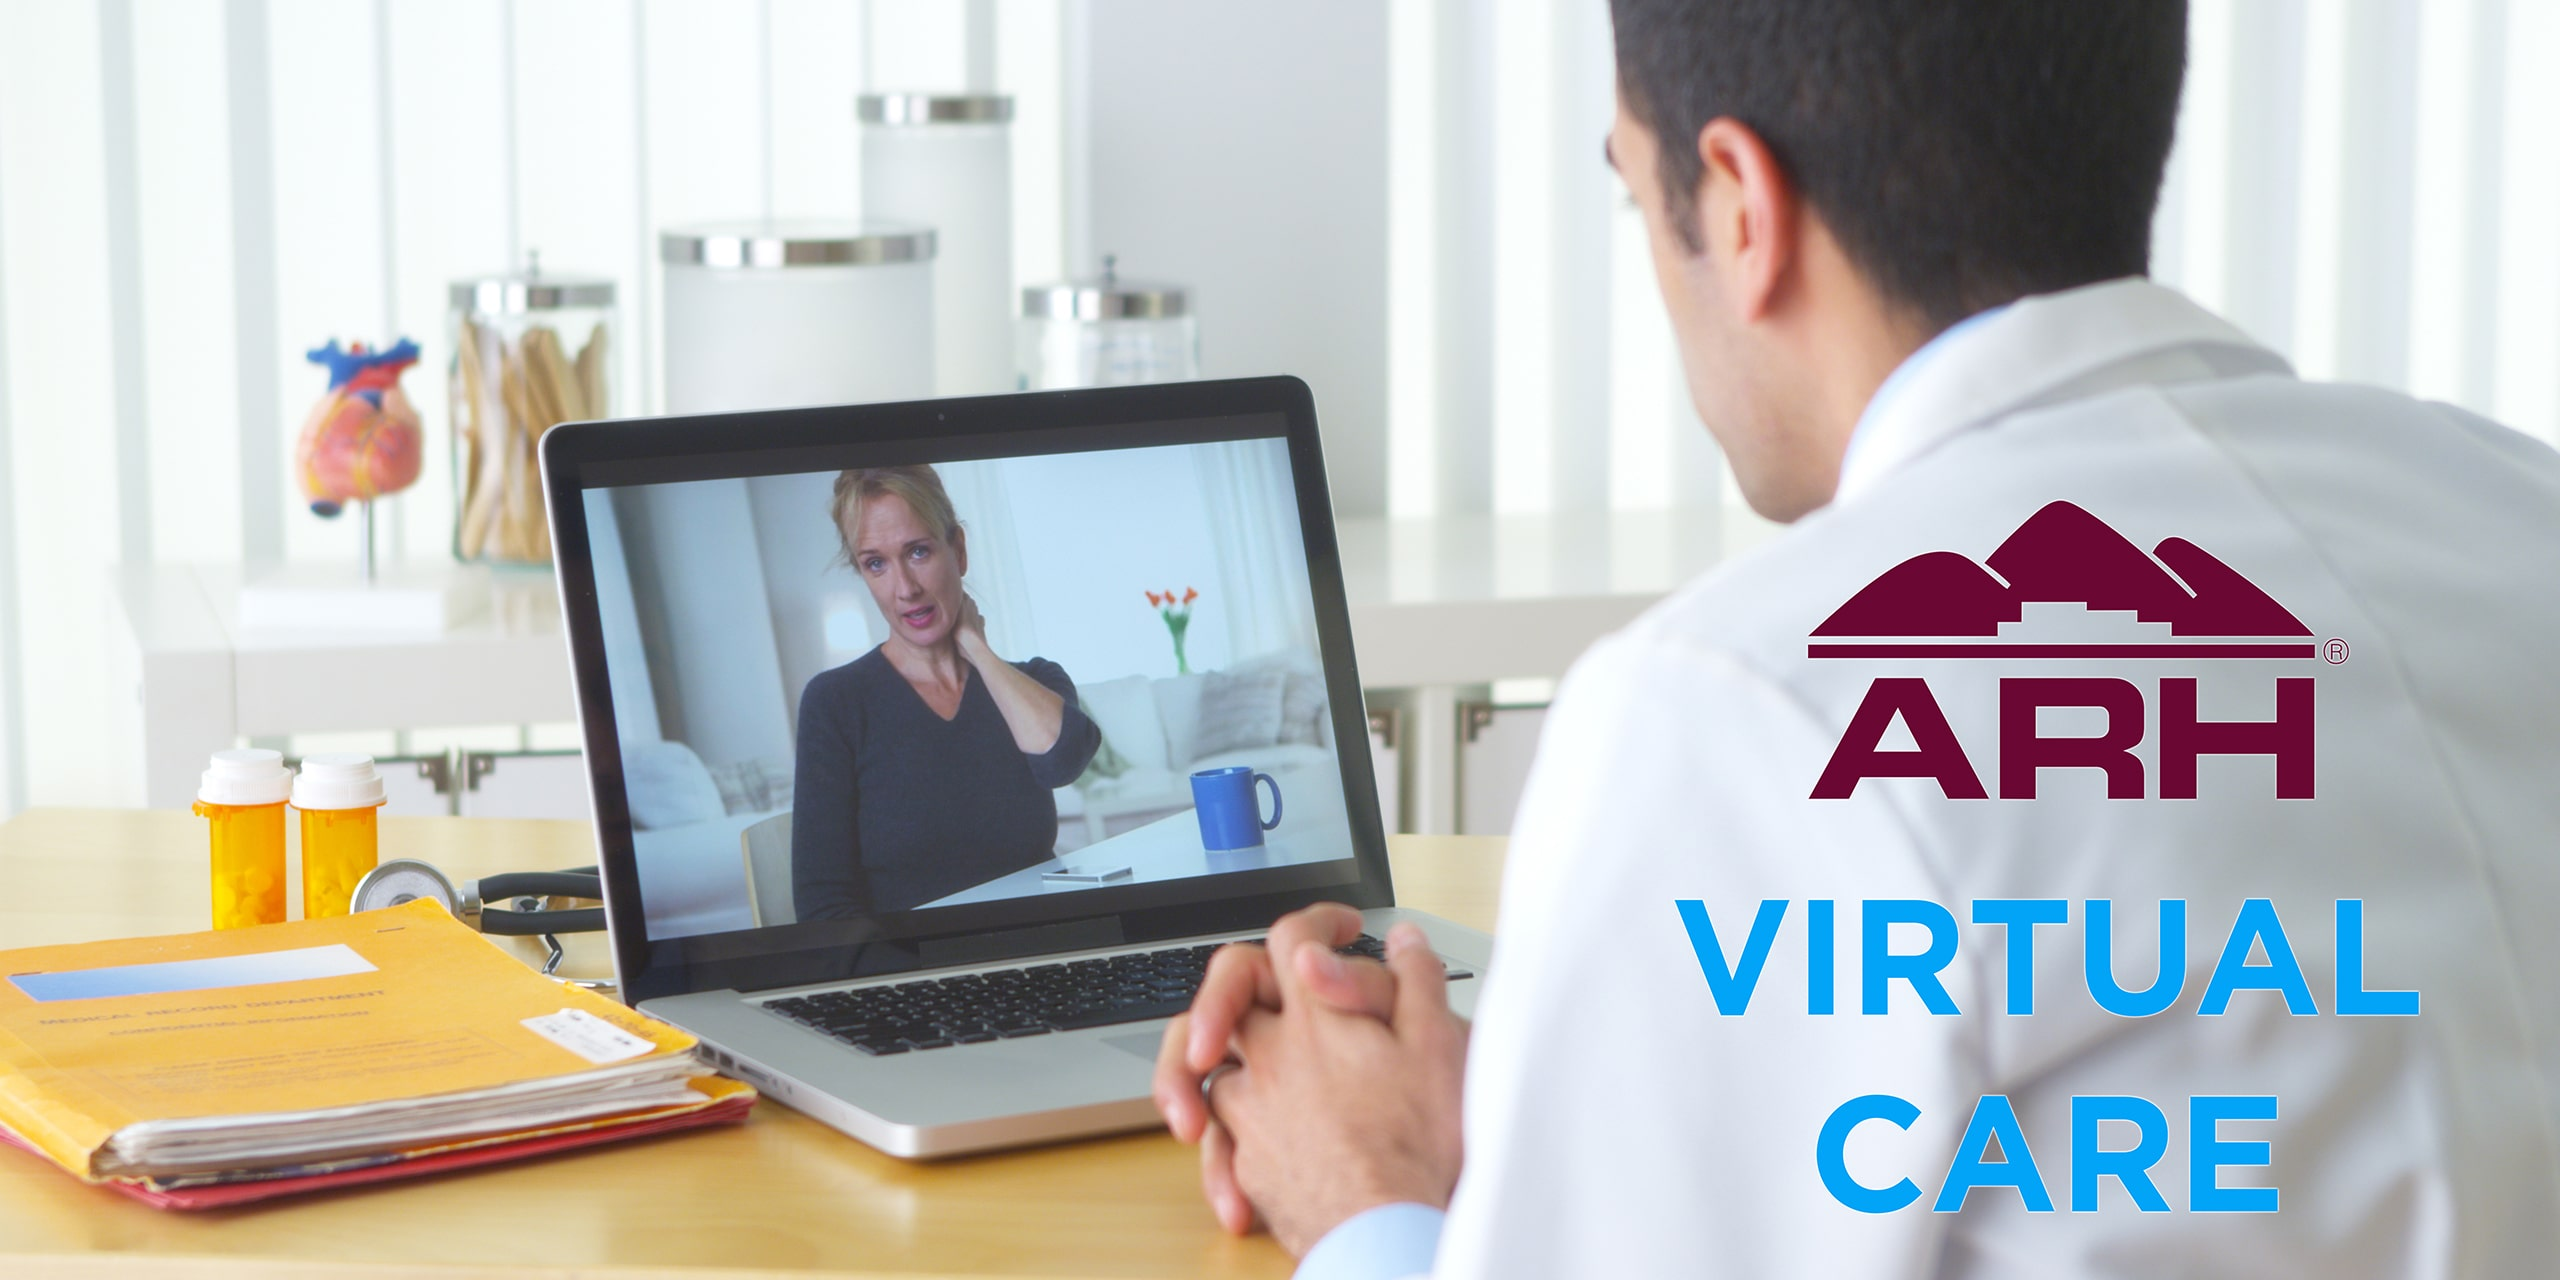 ARH Virtual Health Care Services